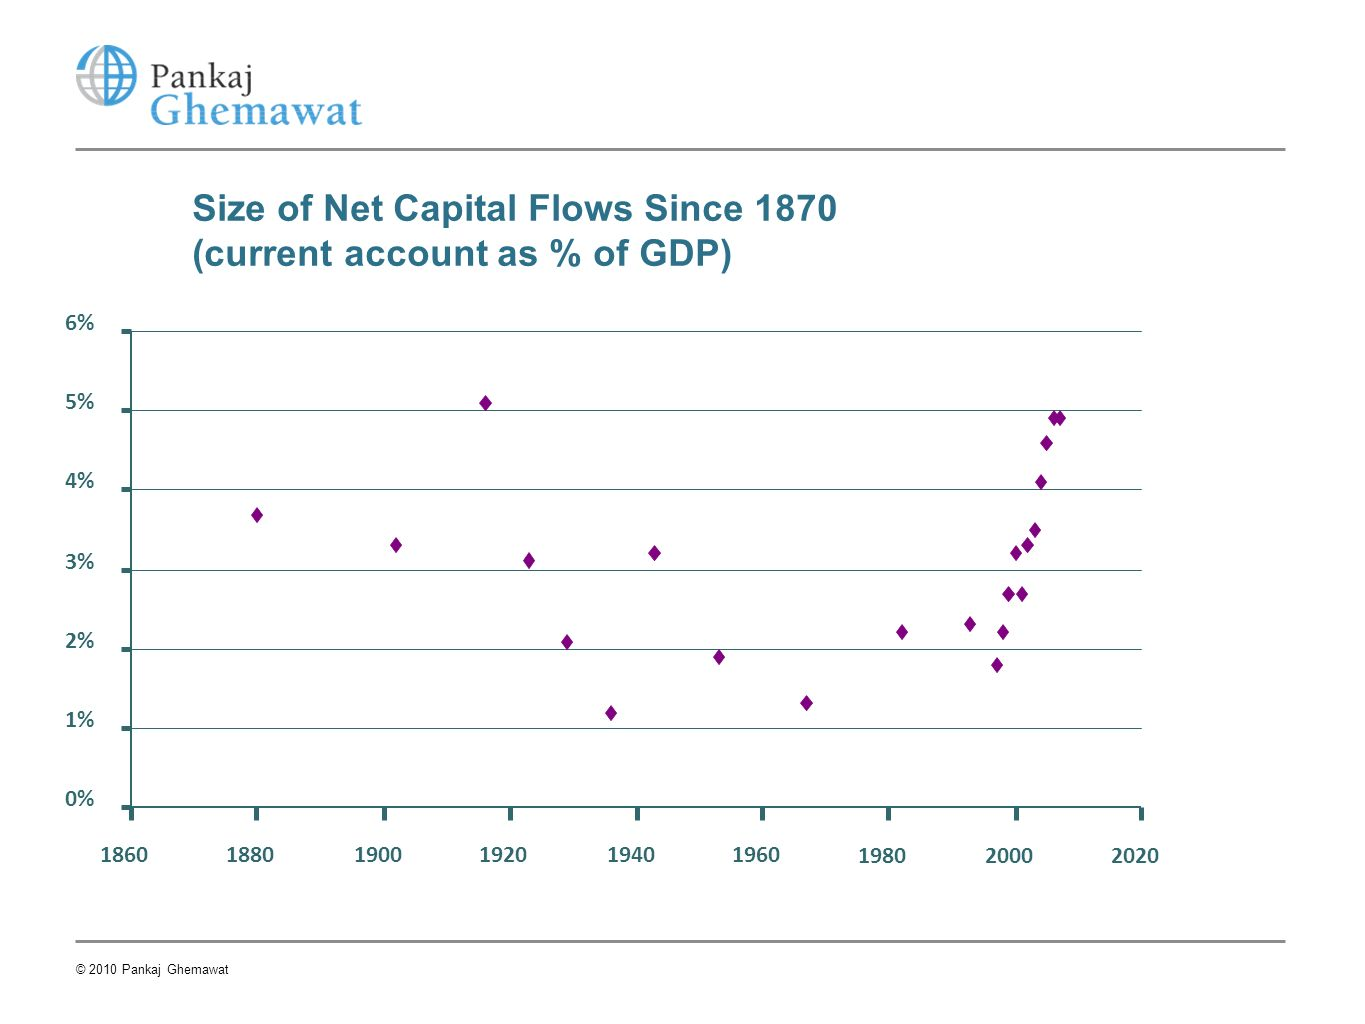 Size of Net Capital Flows Since 1870 (current account as % of GDP)